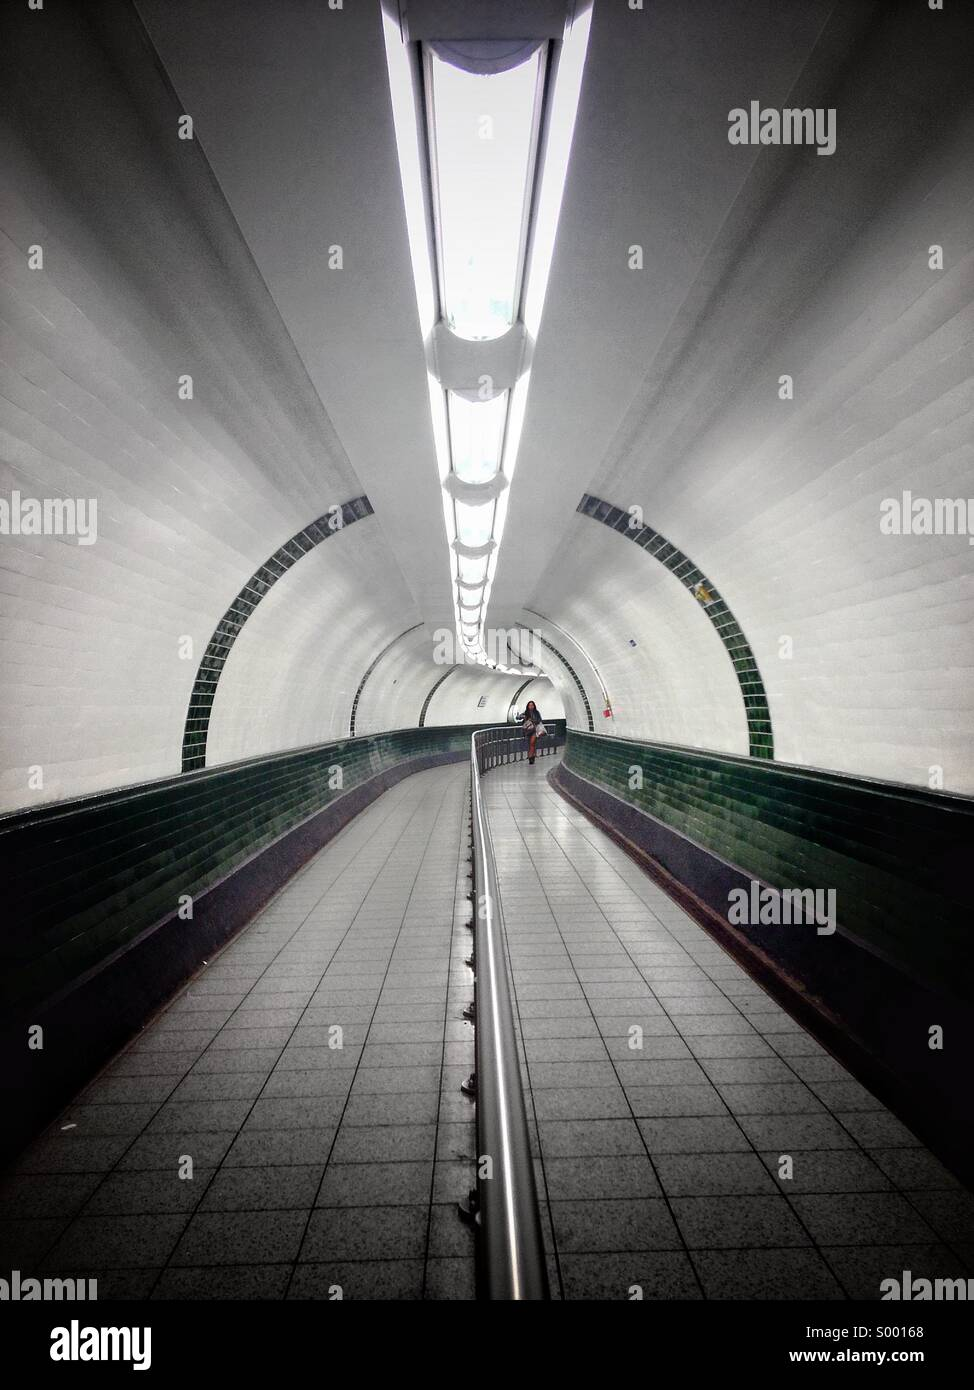 Woman walking through tunnel. - Stock Image